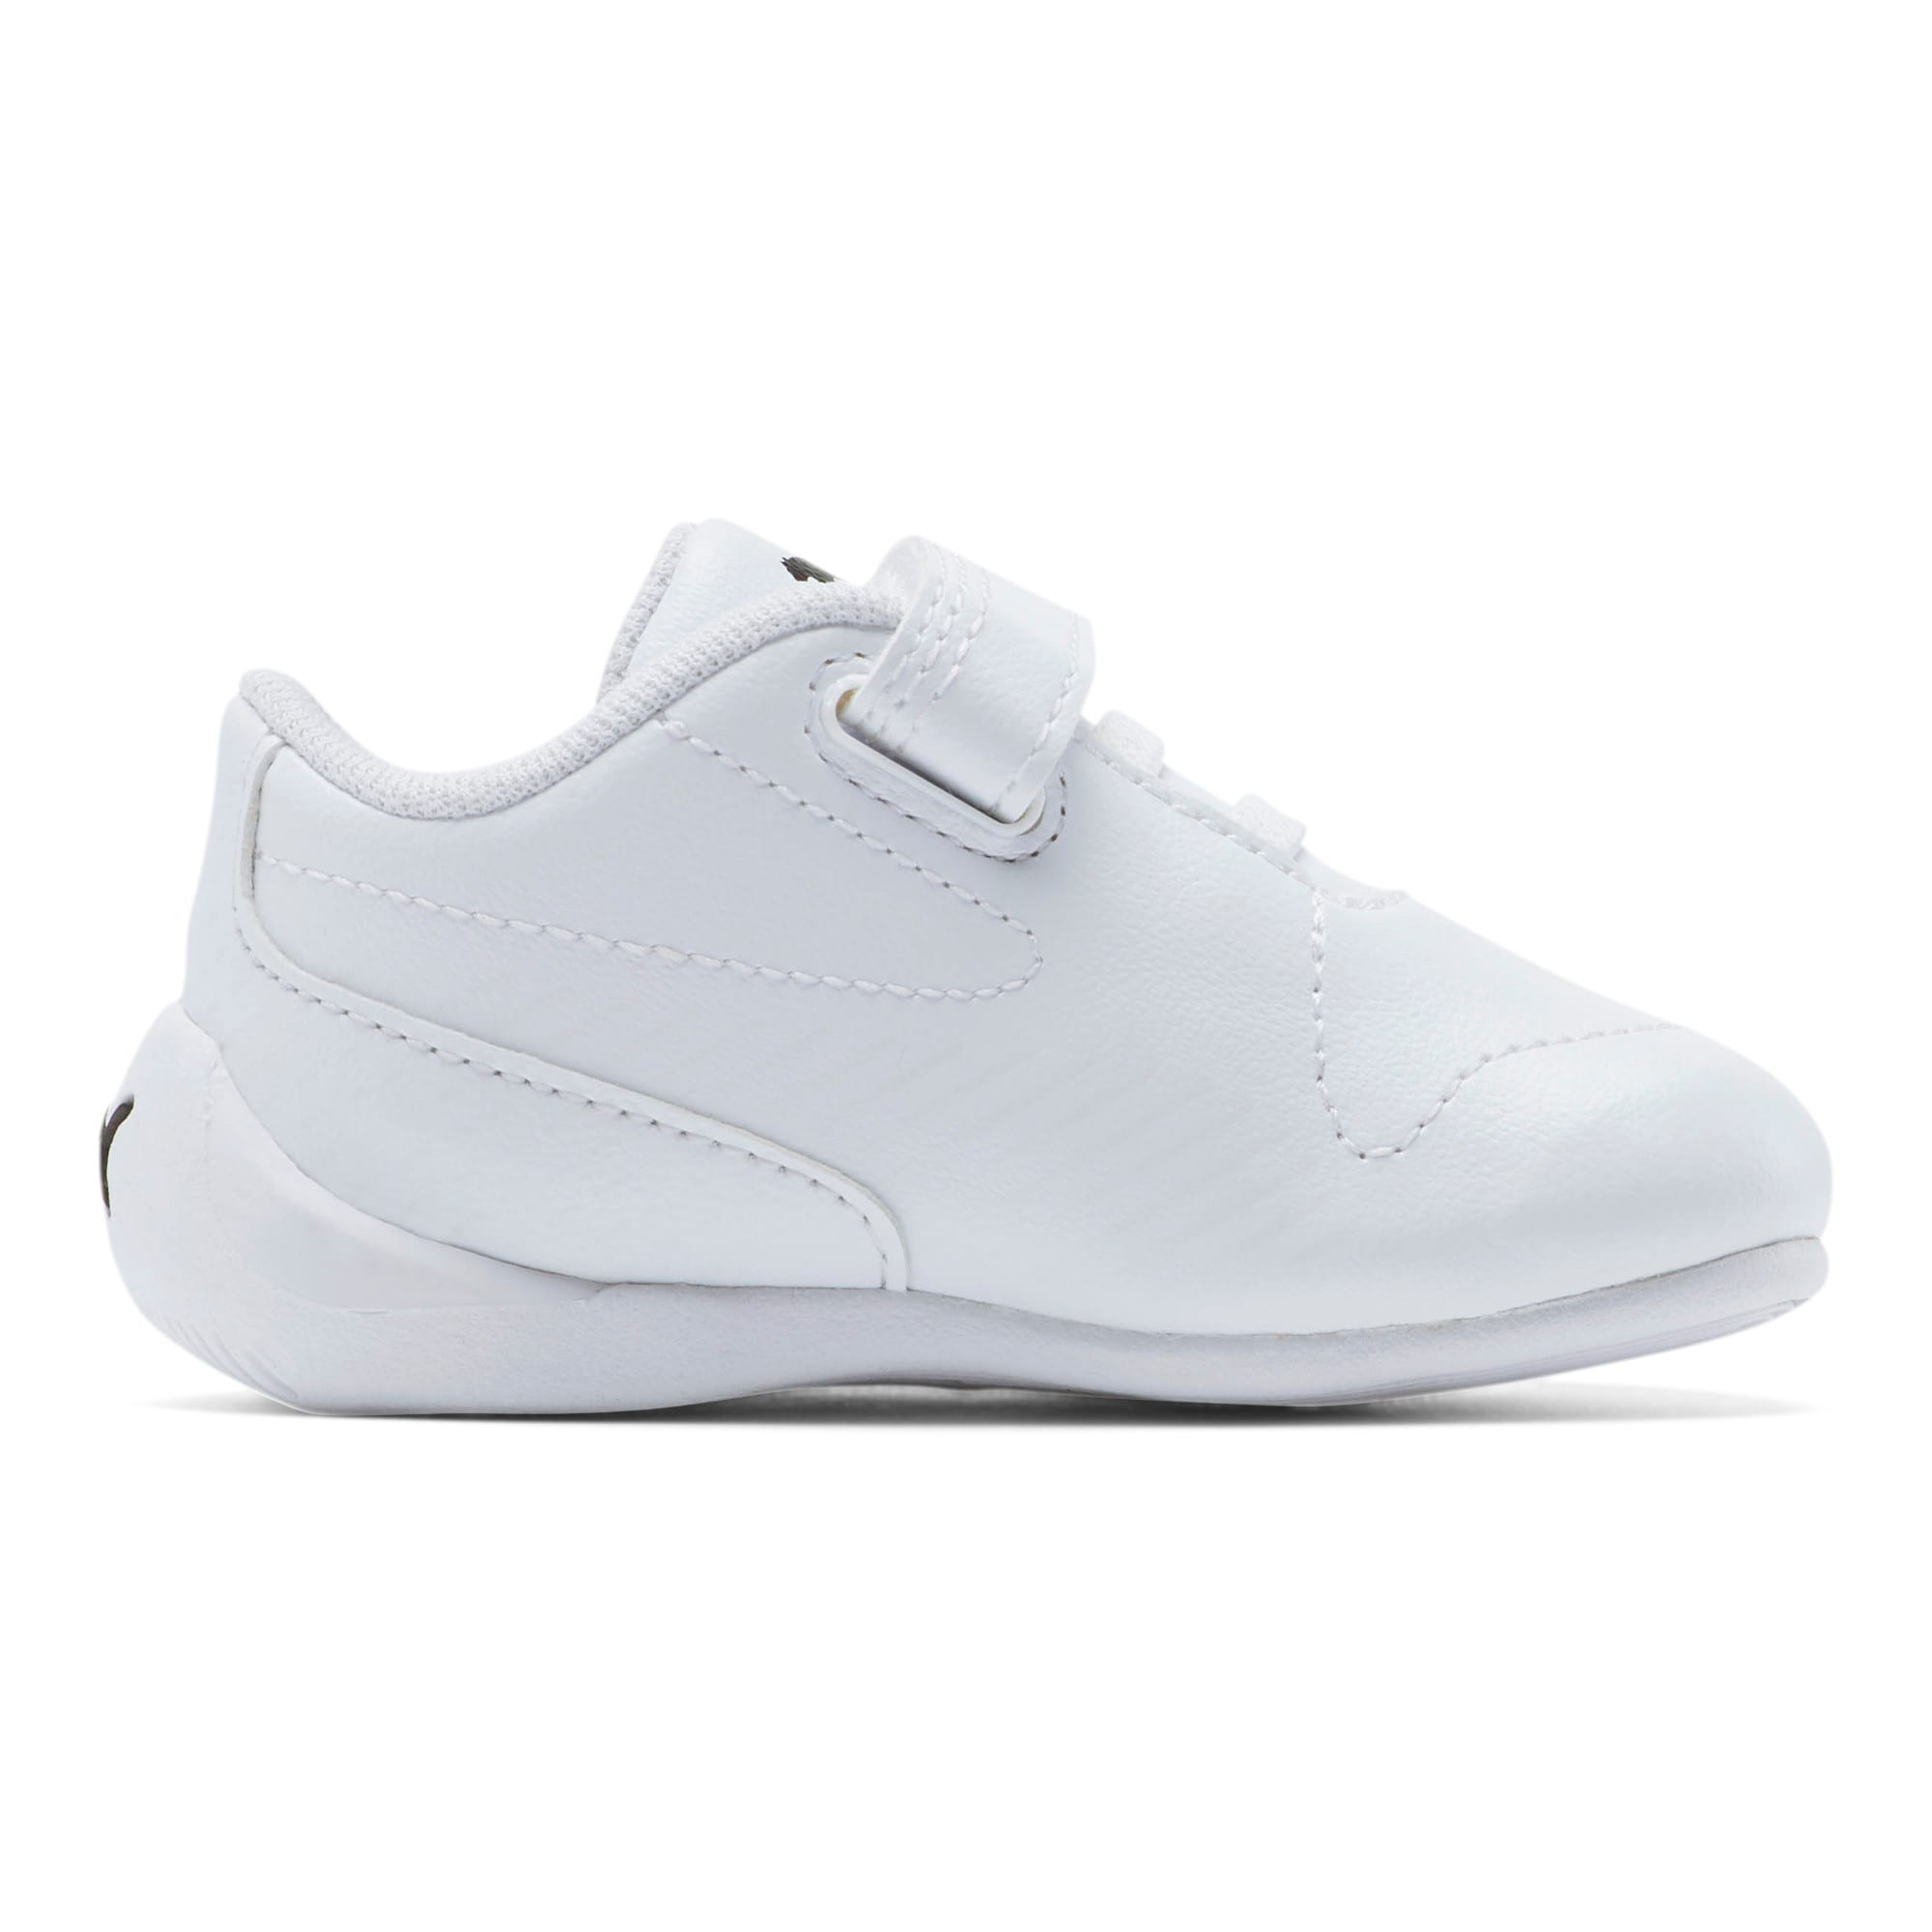 Drift Cat 7S Ultra Toddler Shoes, Puma White-Puma White, large